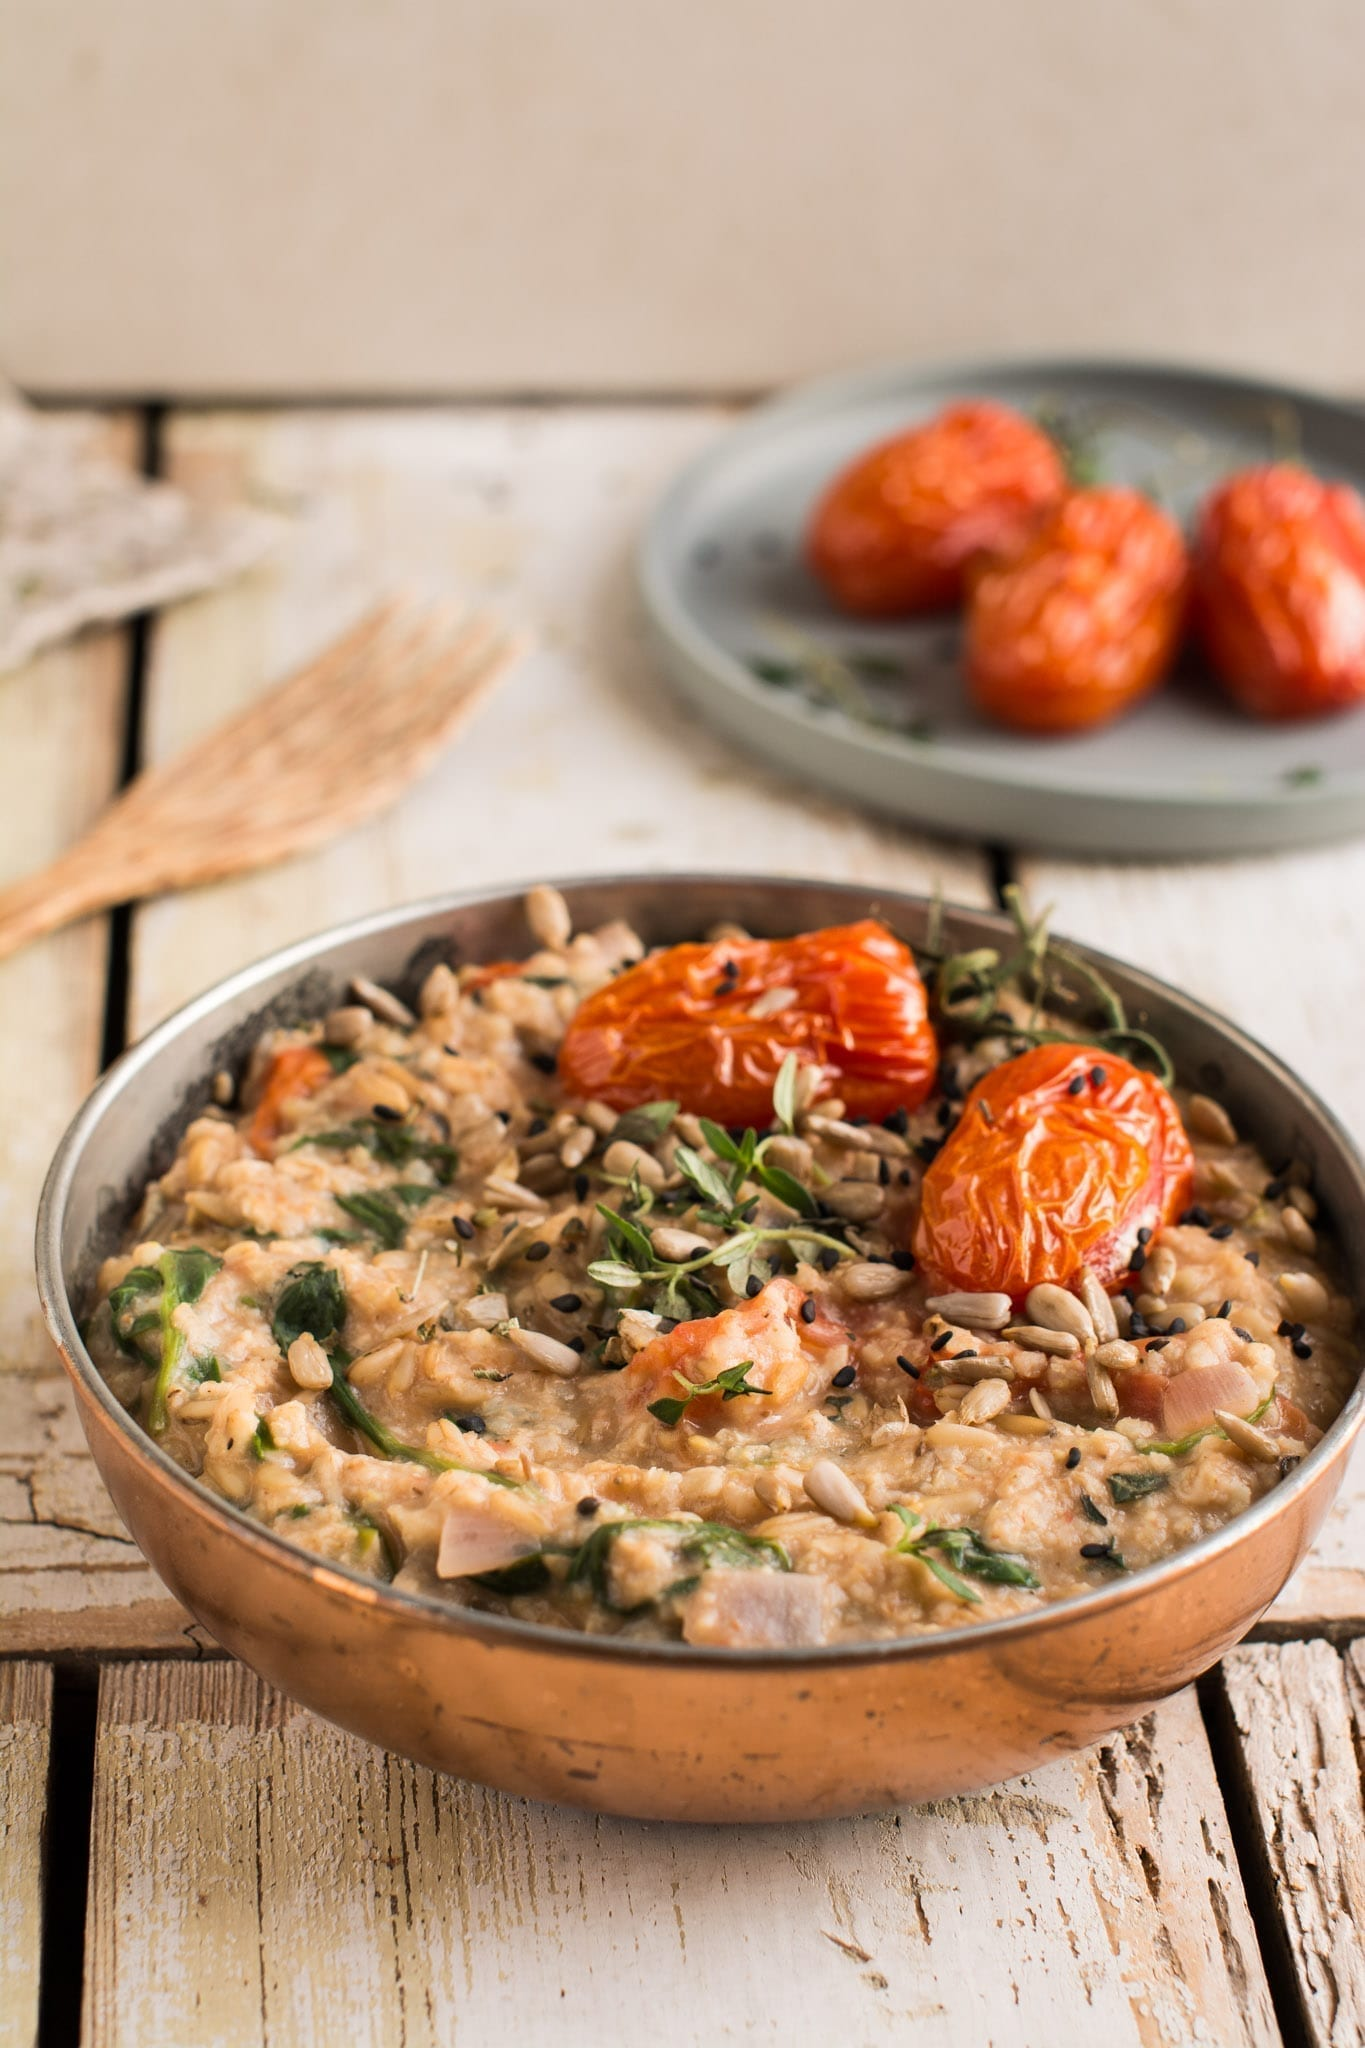 This delicious savory oatmeal is full of Mediterranean flavours and nutrients that your body will appreciate in the morning.